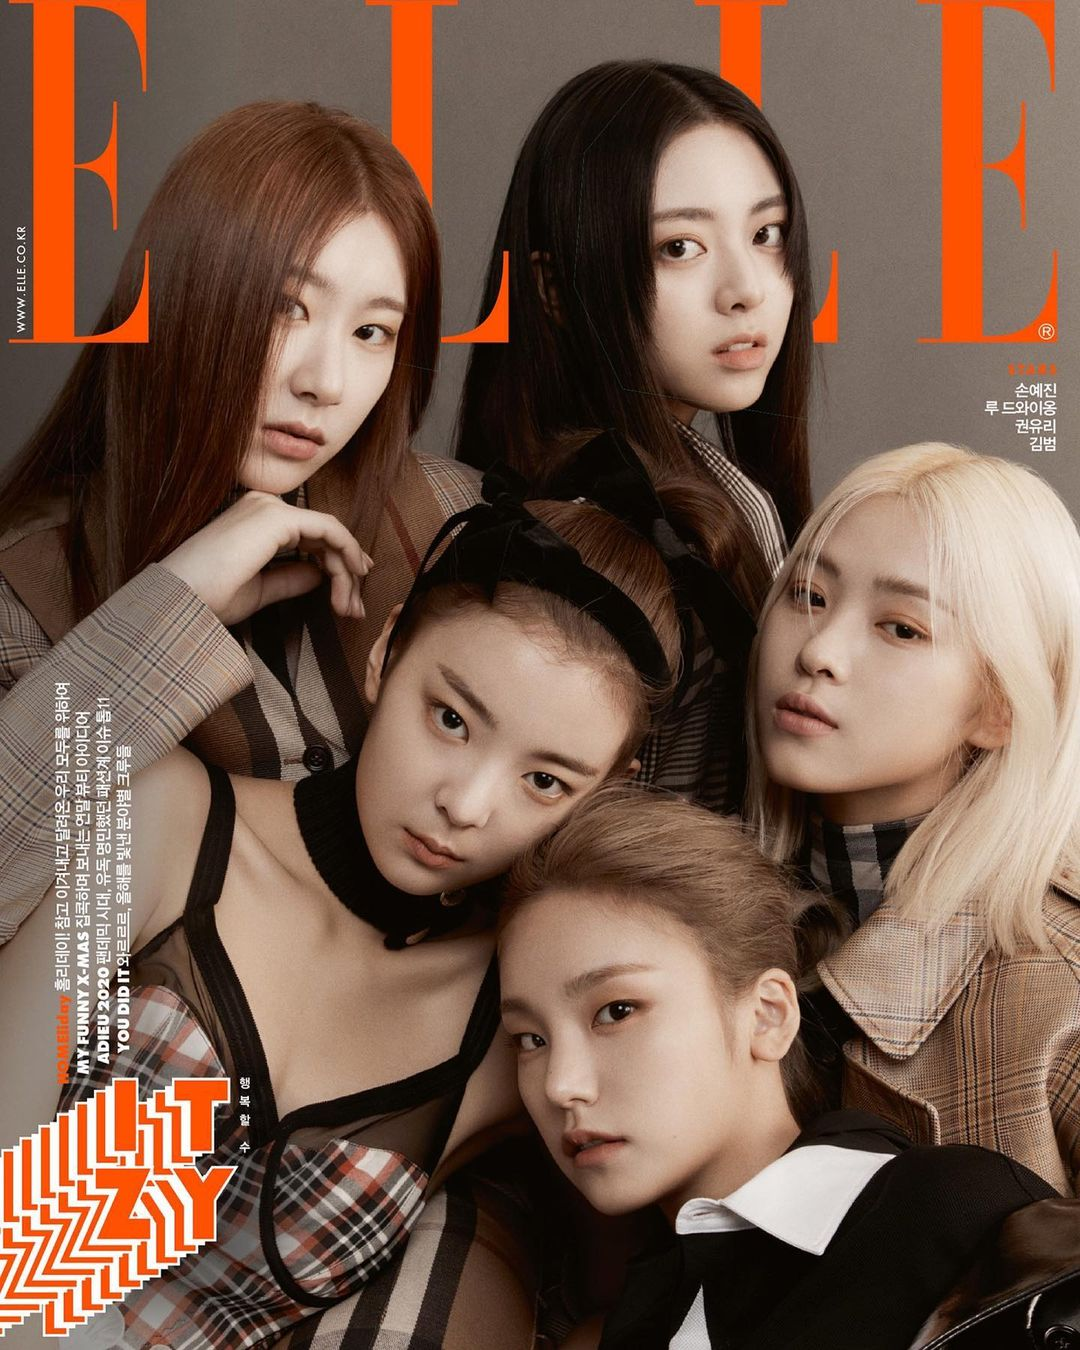 ITZY talks about the importance of self-respect and the kind of artist they want to be